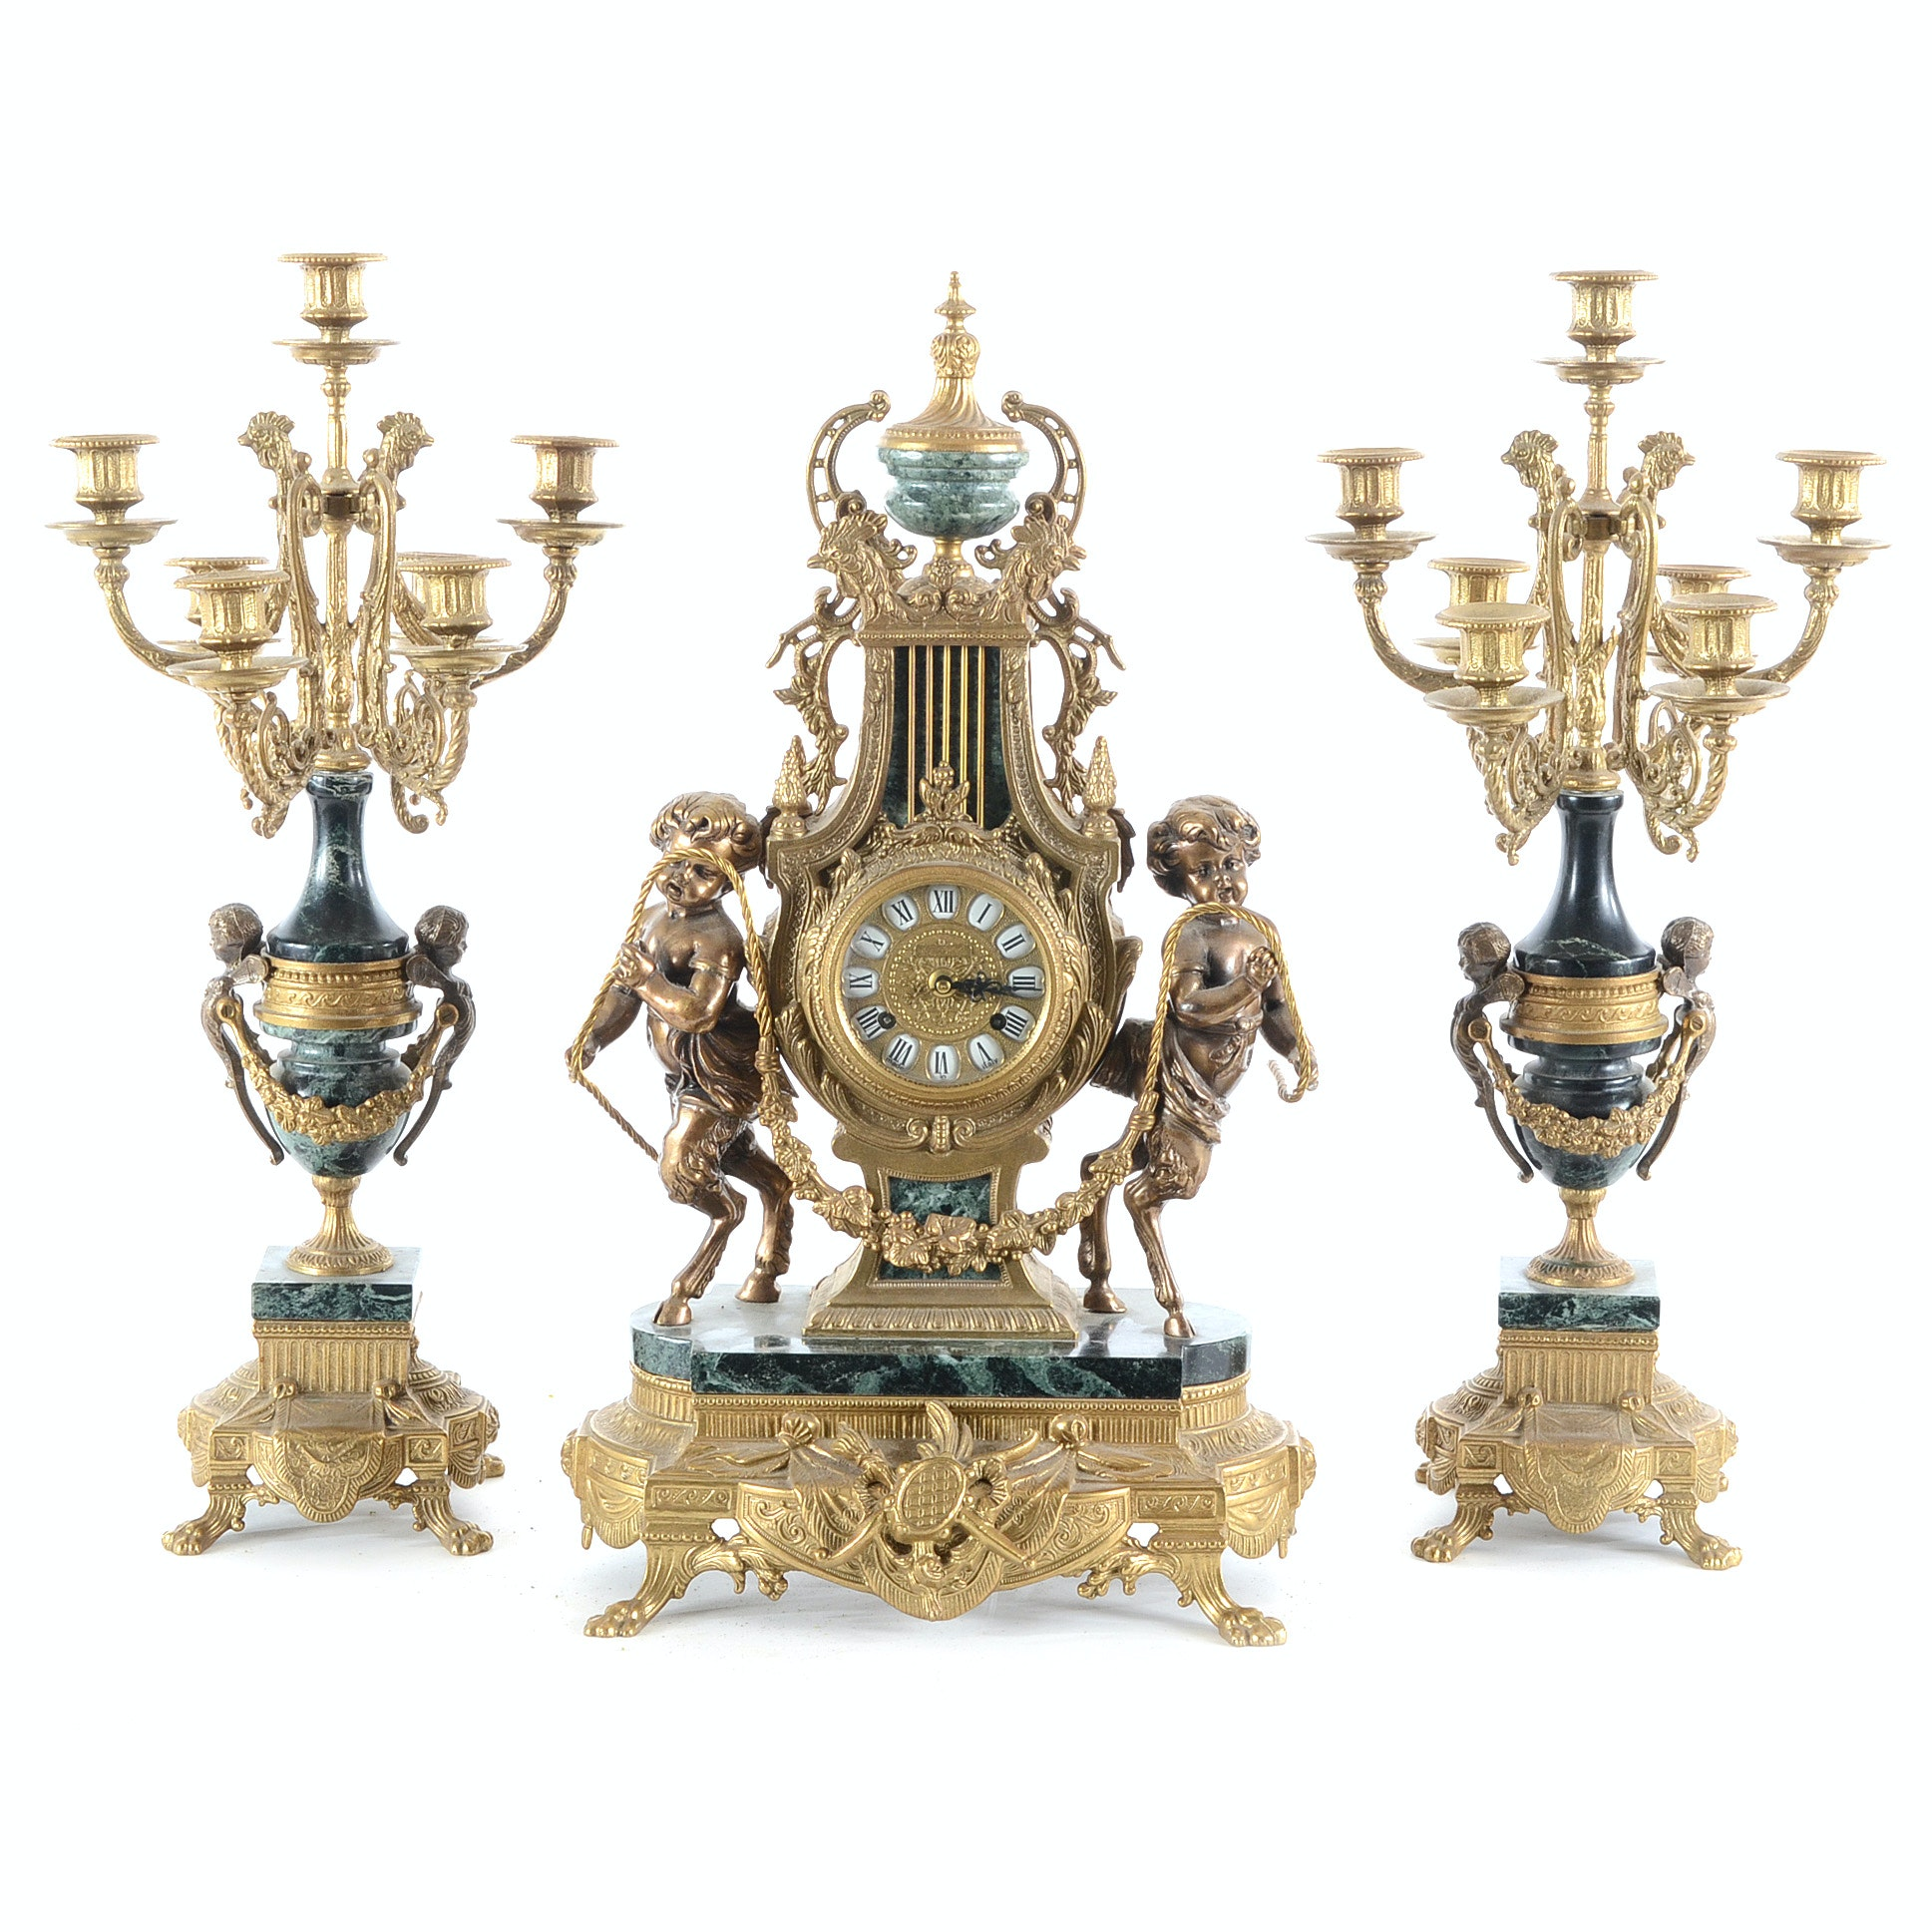 Imperial Mantle Clock With Pair Of Candelabras